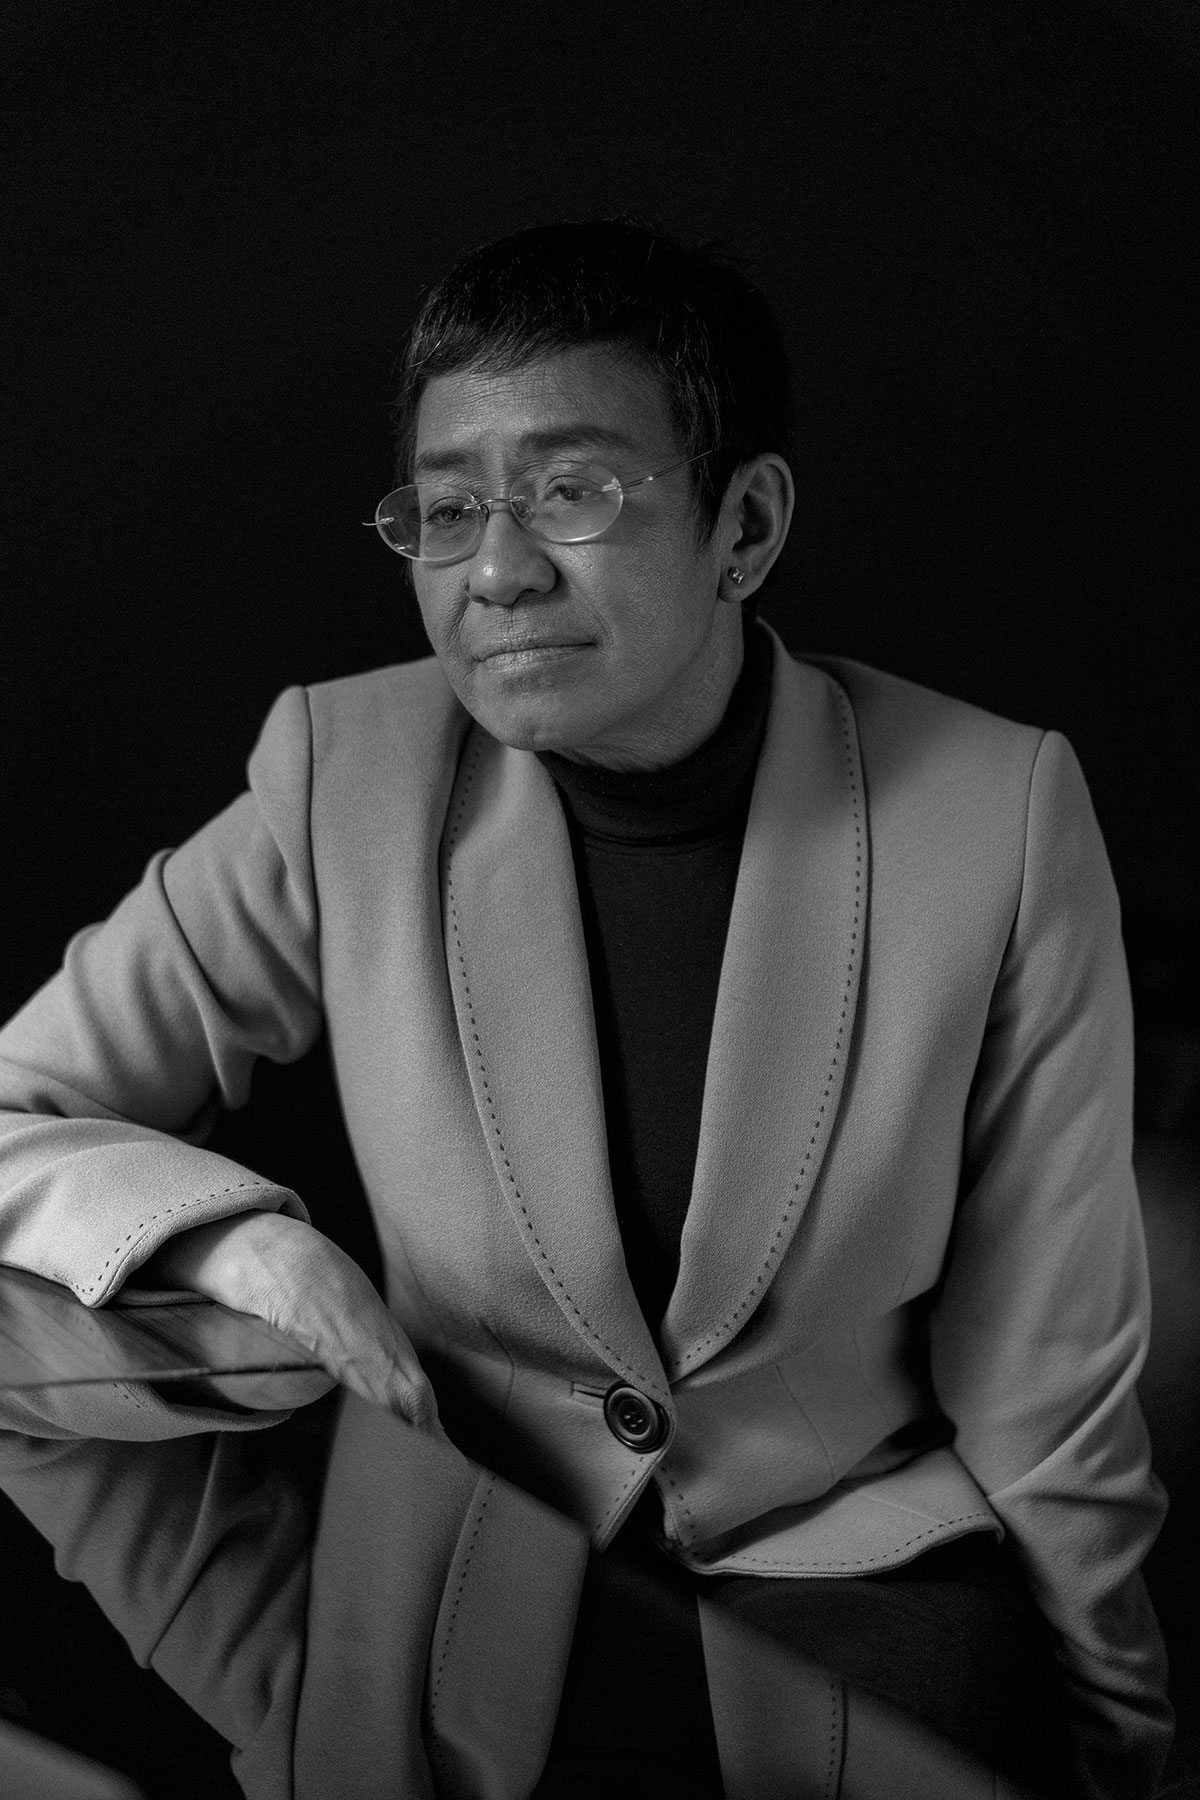 Maria Ressa, journalist, author, and CEO of Rappler